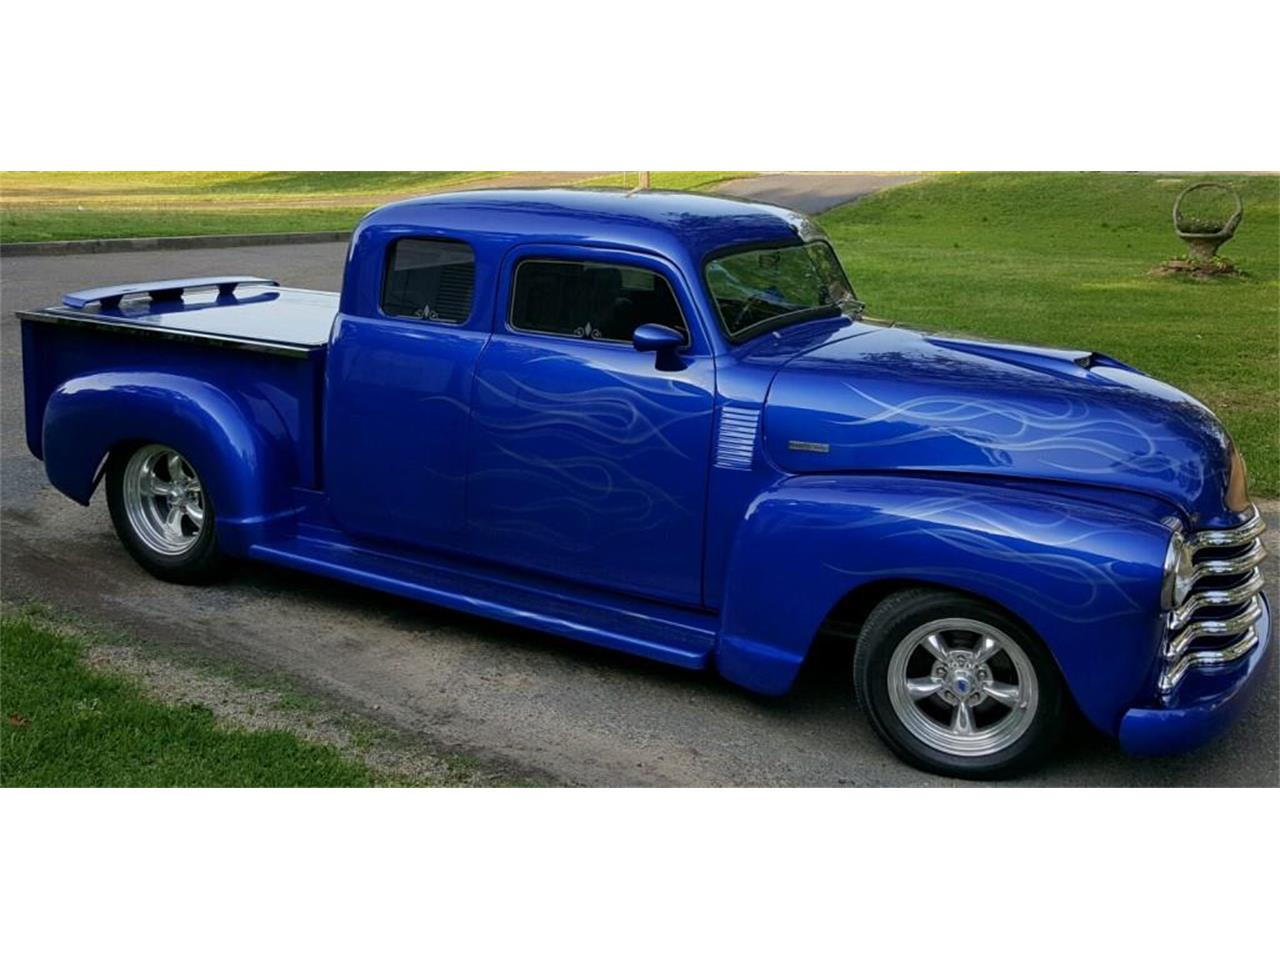 1949 Chevrolet Pickup For Sale Cc 858296 Chevy Truck Paint Colors Large Picture Of Classic Located In Texas 4500000 Ie9k